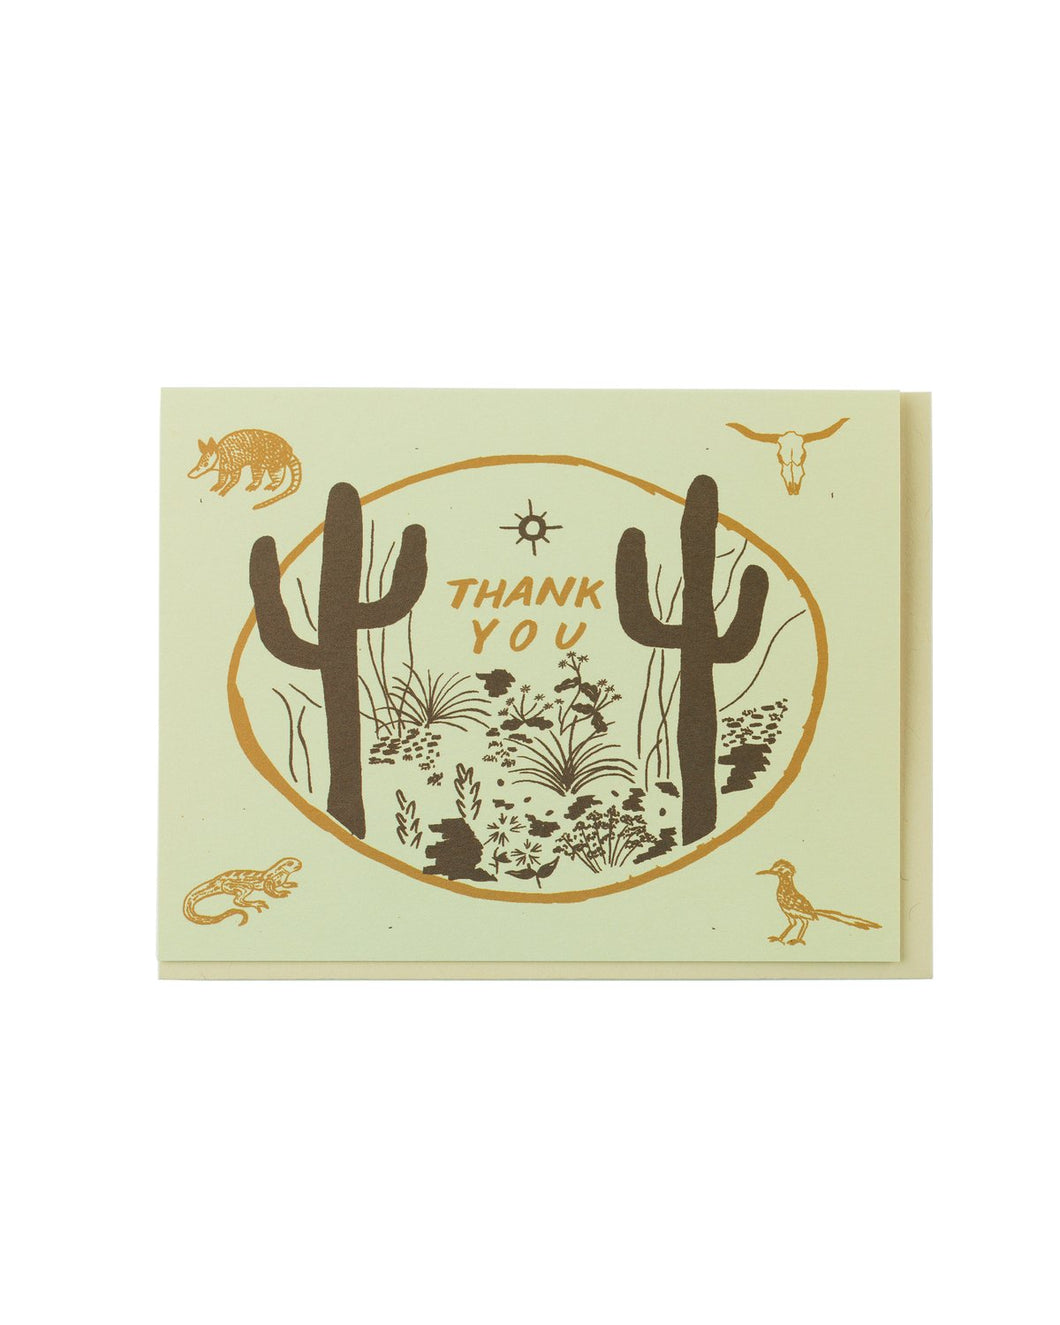 sonoran thank you card